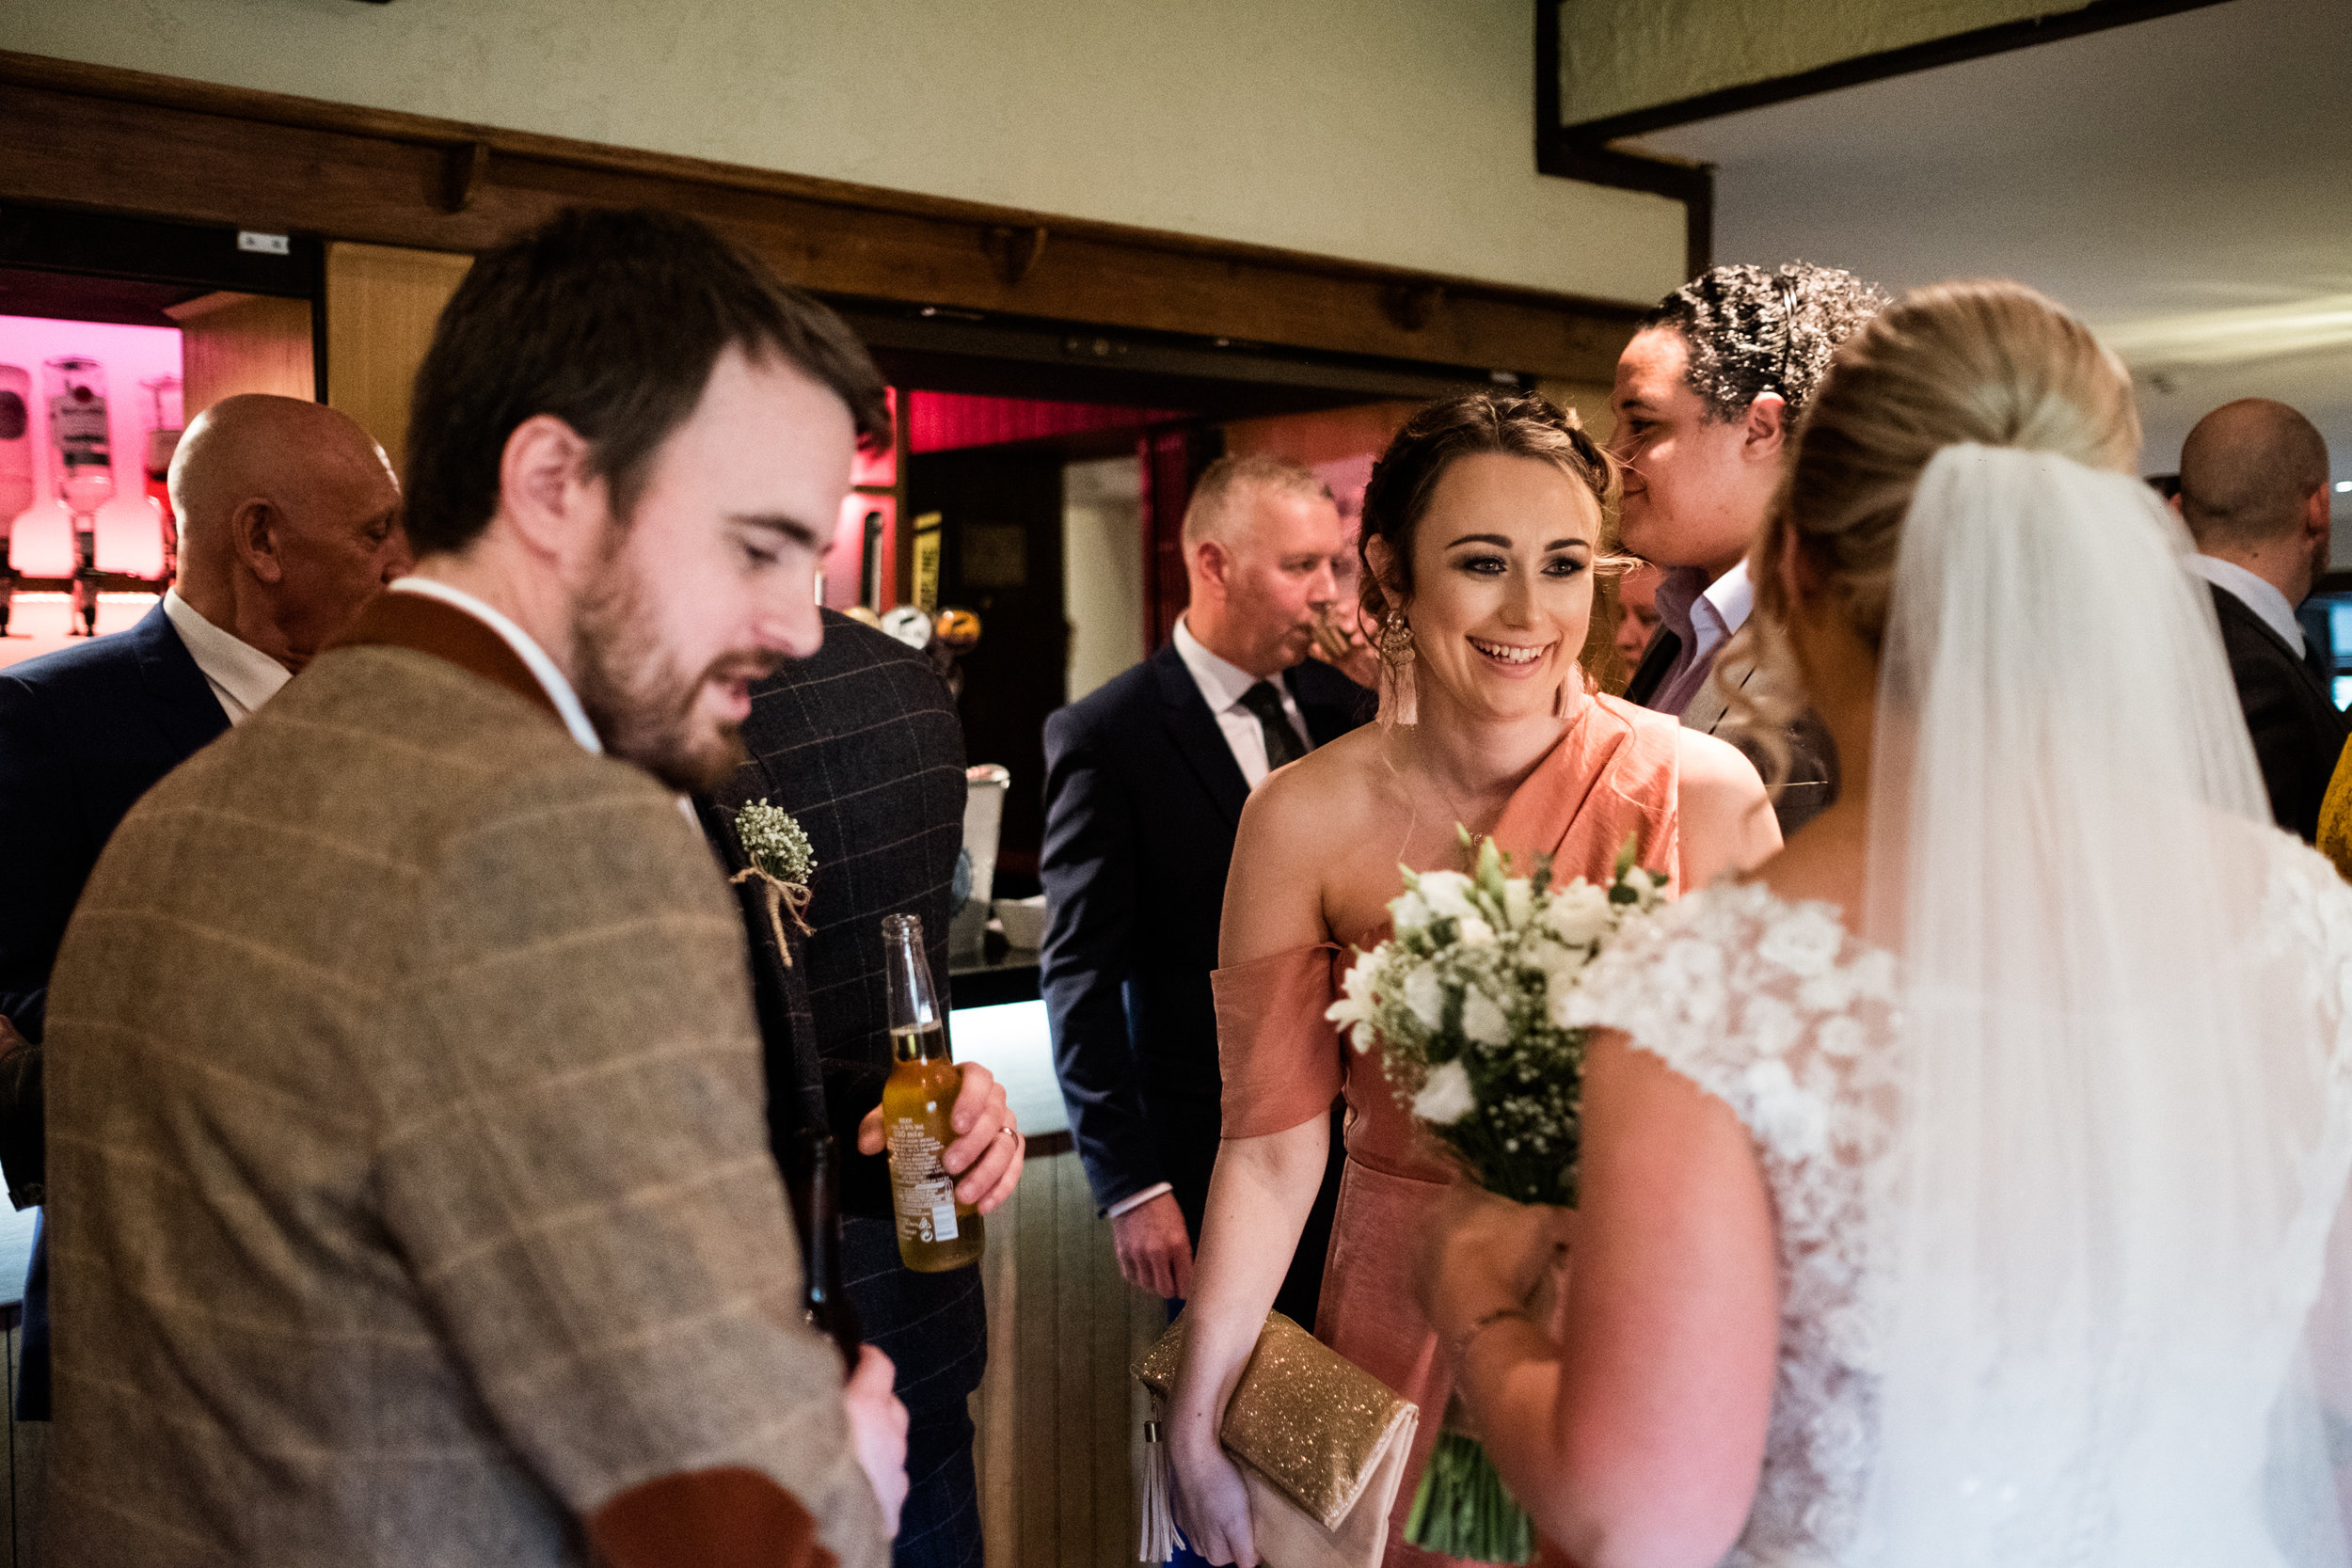 Autumn Wedding Photography at The Three Horseshoes, Blackshaw Moor, Staffordshire Moorlands - Jenny Harper-32.jpg